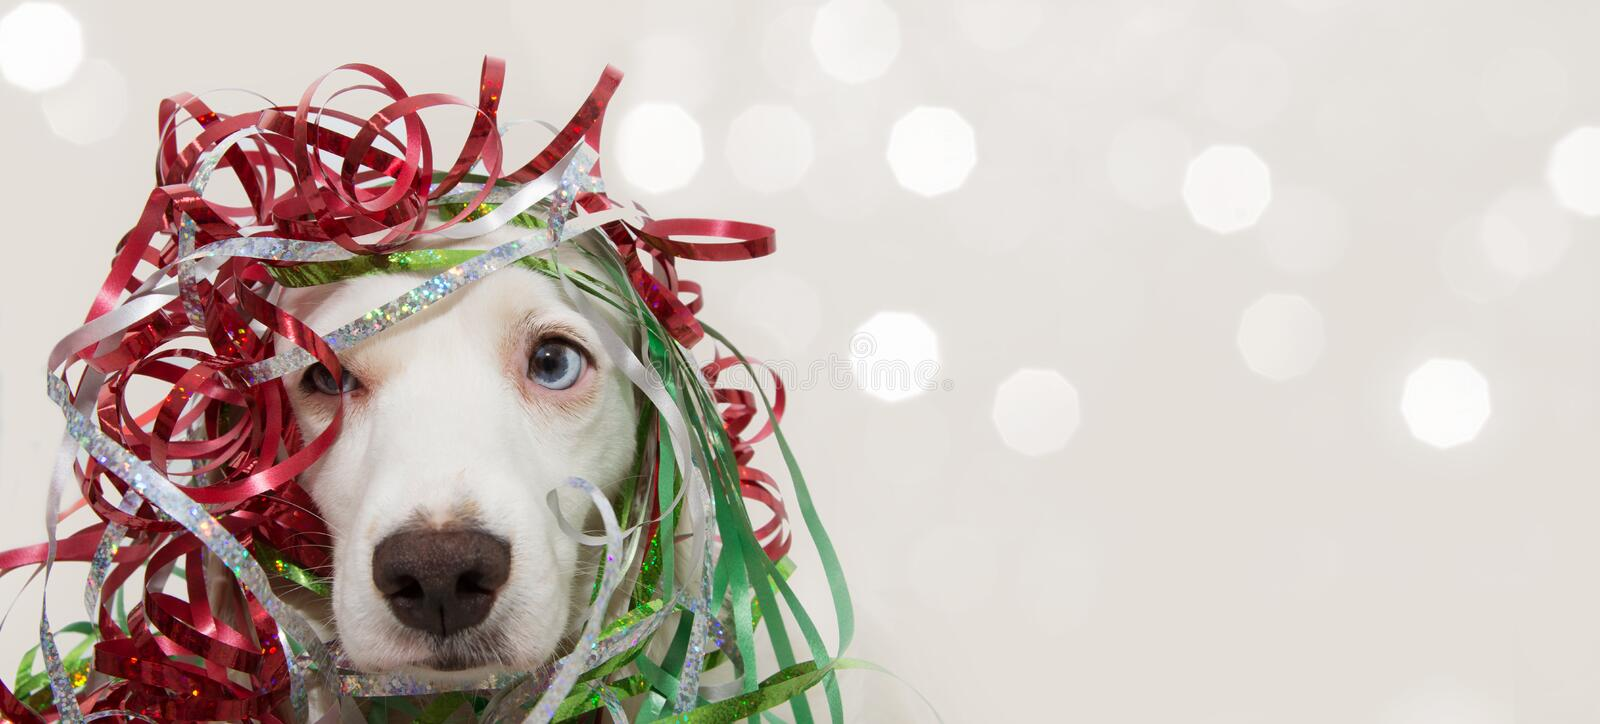 BANNER DOG HAVING A PARTY WITH SERPENTINE STREMERS FOR BIRTHDAY, NEW YEAR, CHRISTMAS, CARNIVAL OR ANNIVERSARY. ISOLATED ON GRAY stock photography